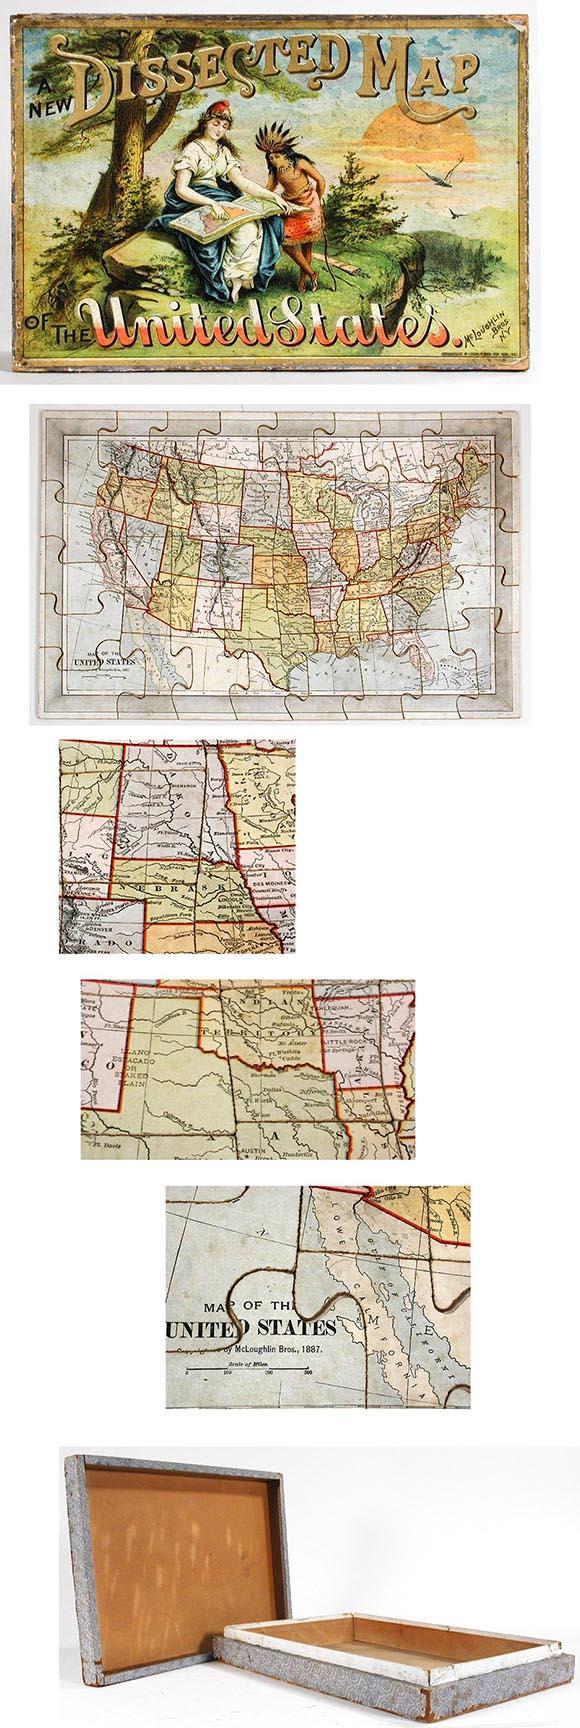 1887 McLoughlin Bros., New Dissected Map of the United States